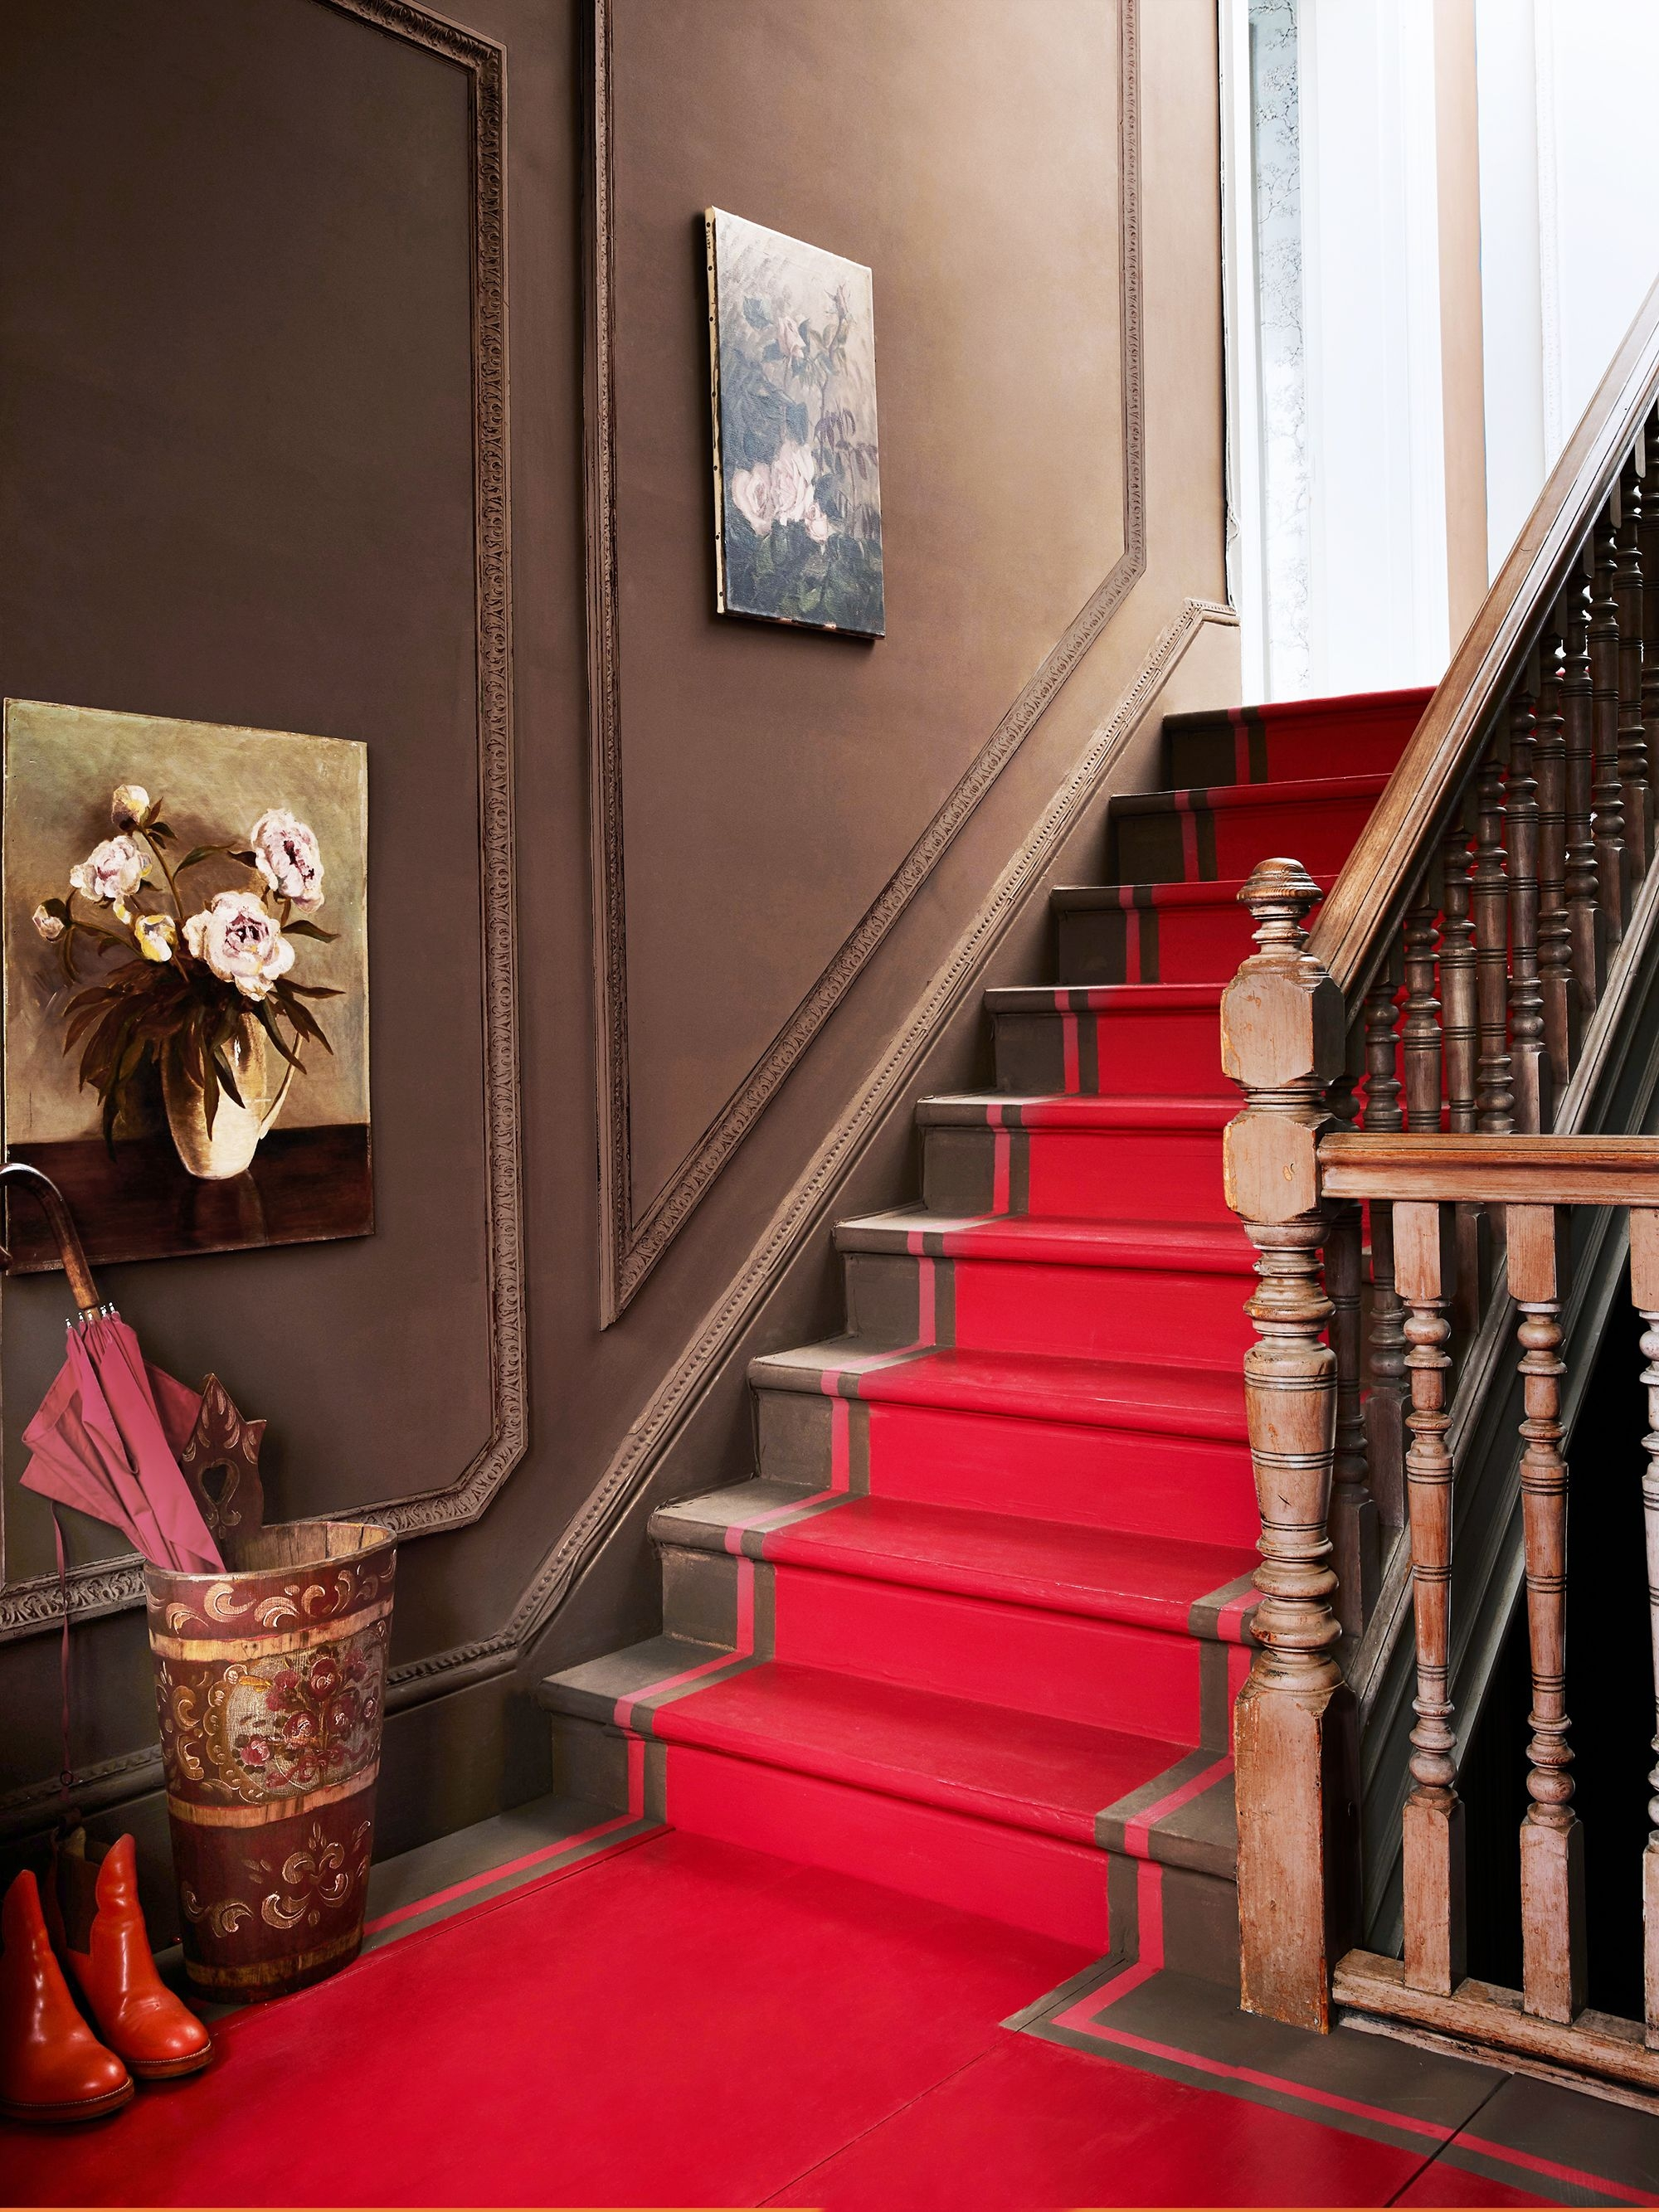 36 Best Wall Art Ideas For Every Room Cool Wall Decor And Prints | Wall Painting Designs For Staircase | Side Wall | Upstairs | Art Staircase | Boy | Creative